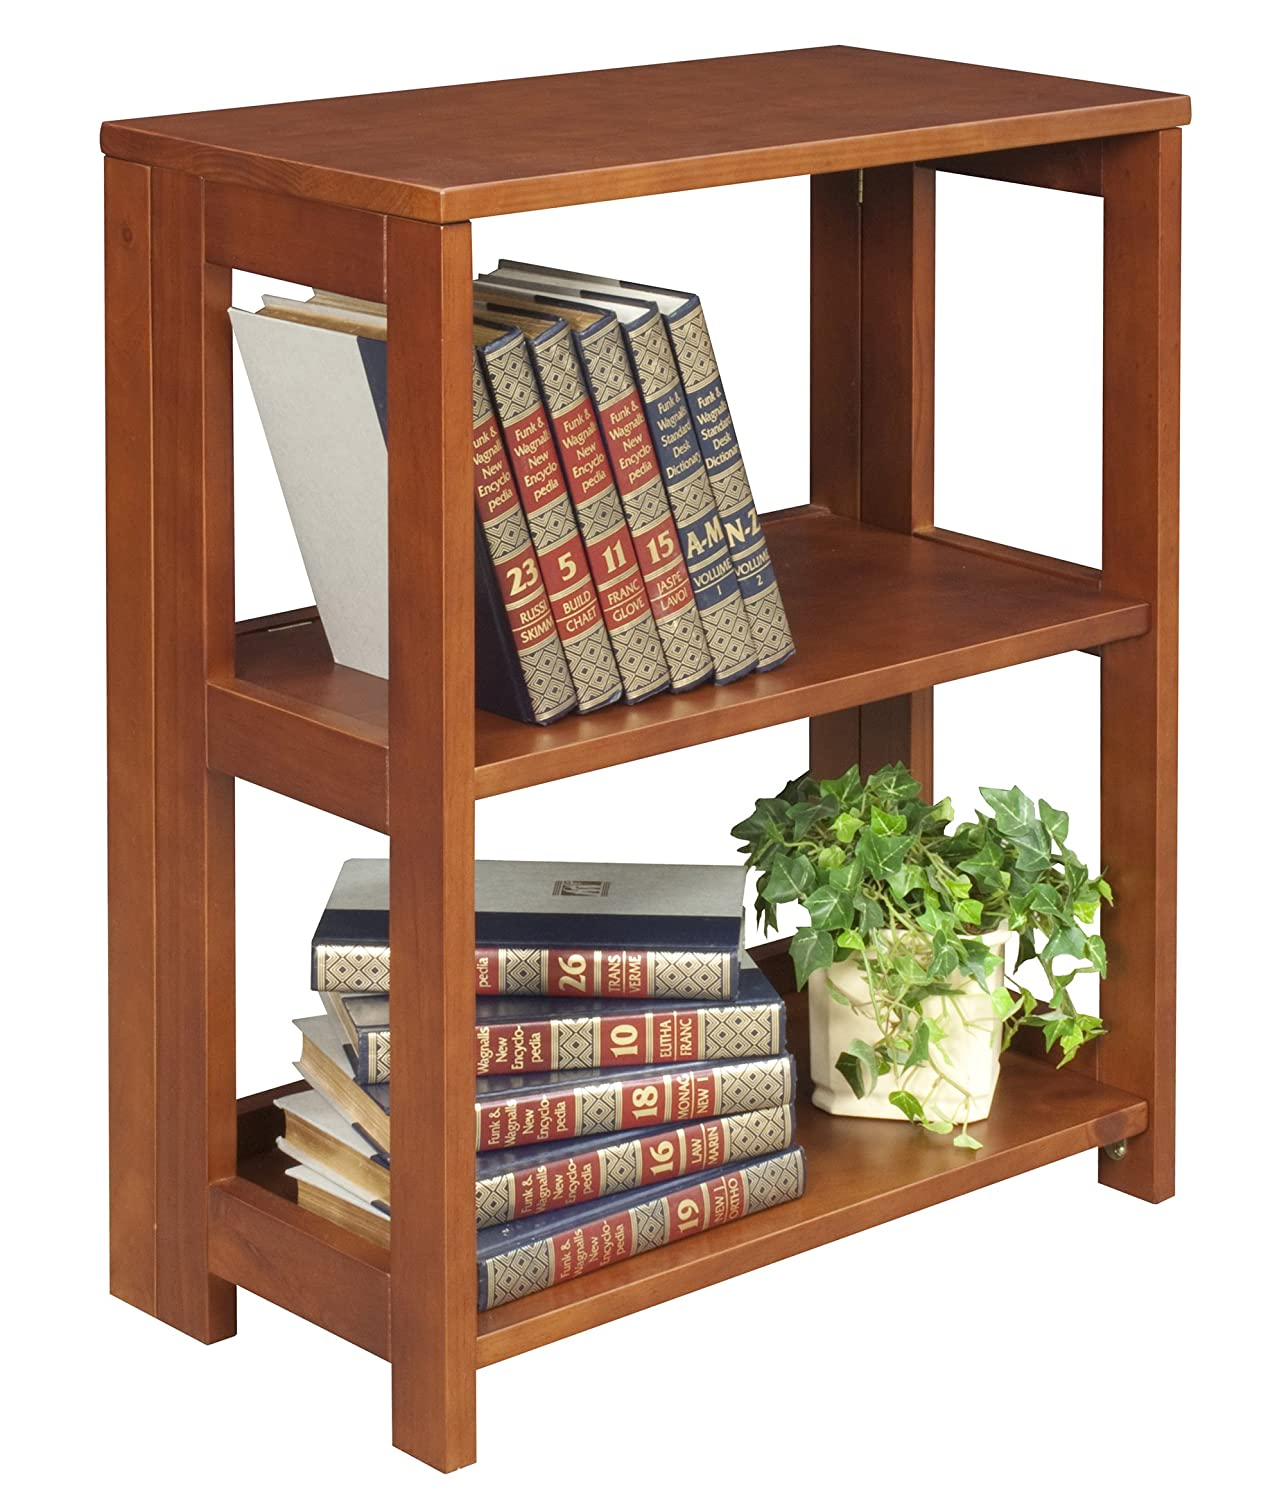 to bookcases product living decor bookcase stands stand spaces entertainment consoles home and departments your wide furniture display reviews fit inch centers valencia tv for room